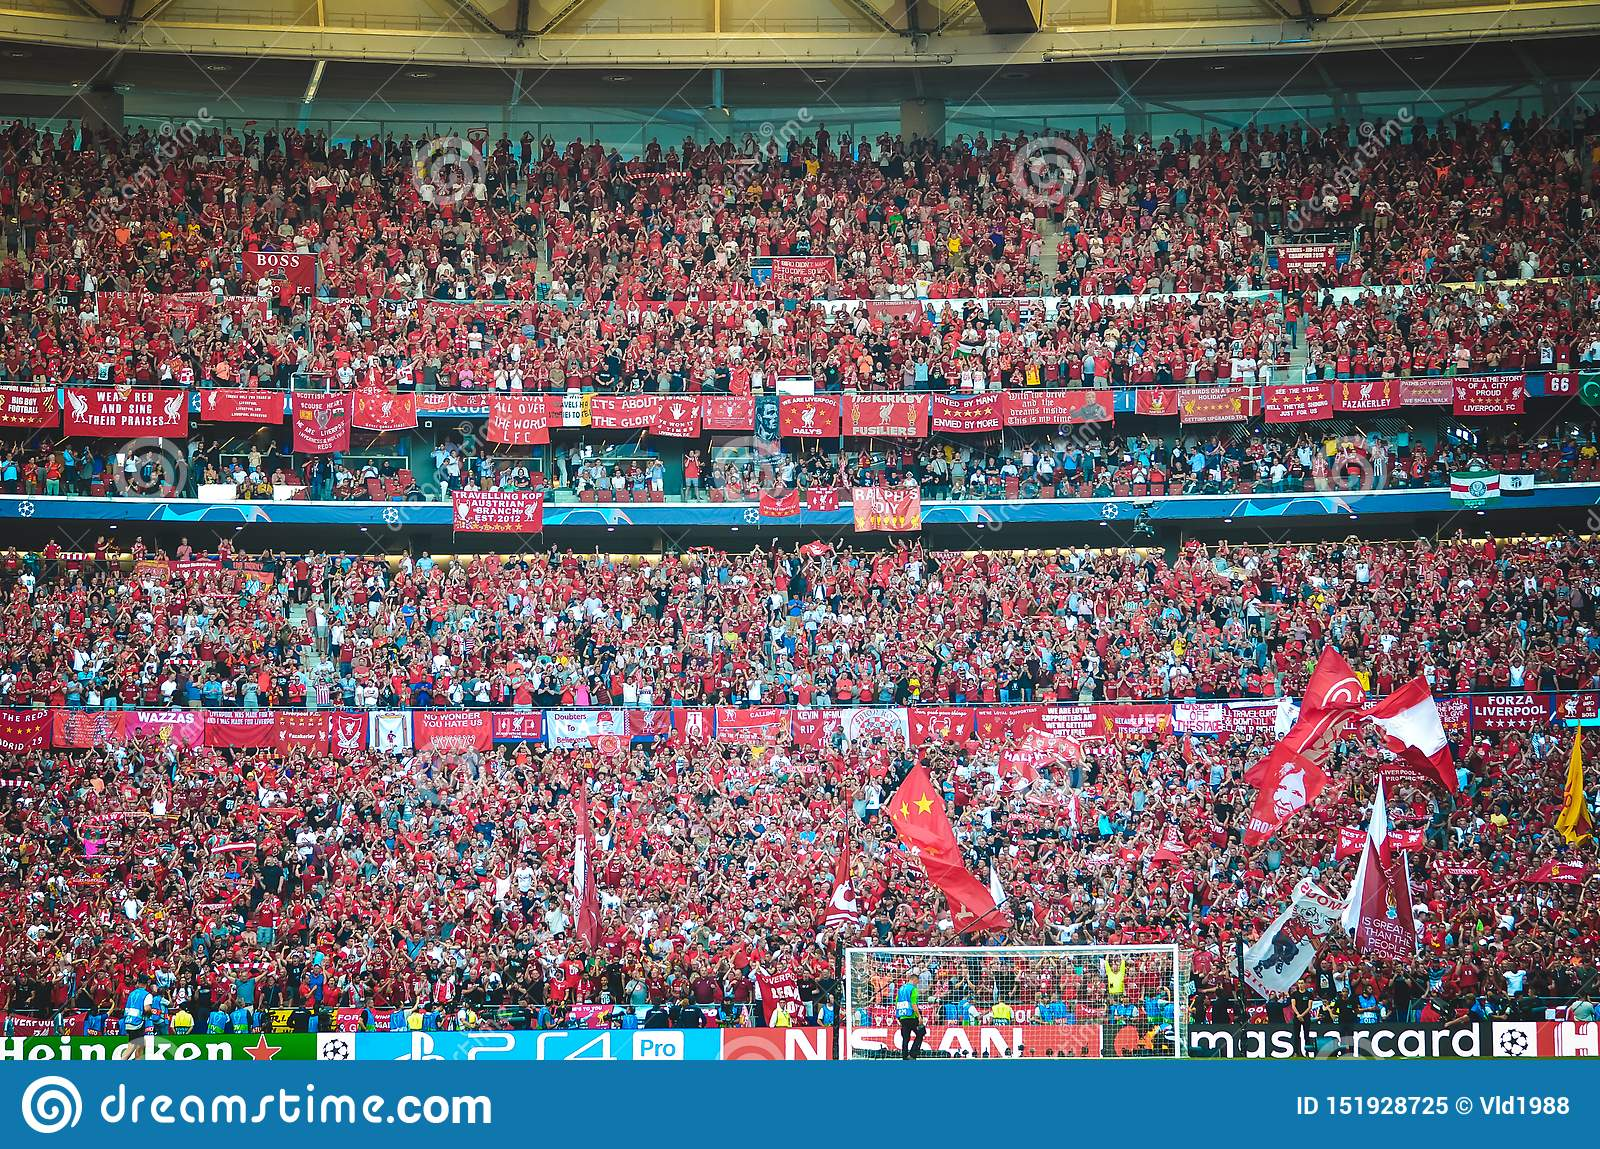 Madrid, Spain - 01 MAY 2019: Liverpool fans in the stands support the team during the UEFA Champions League 2019 final match